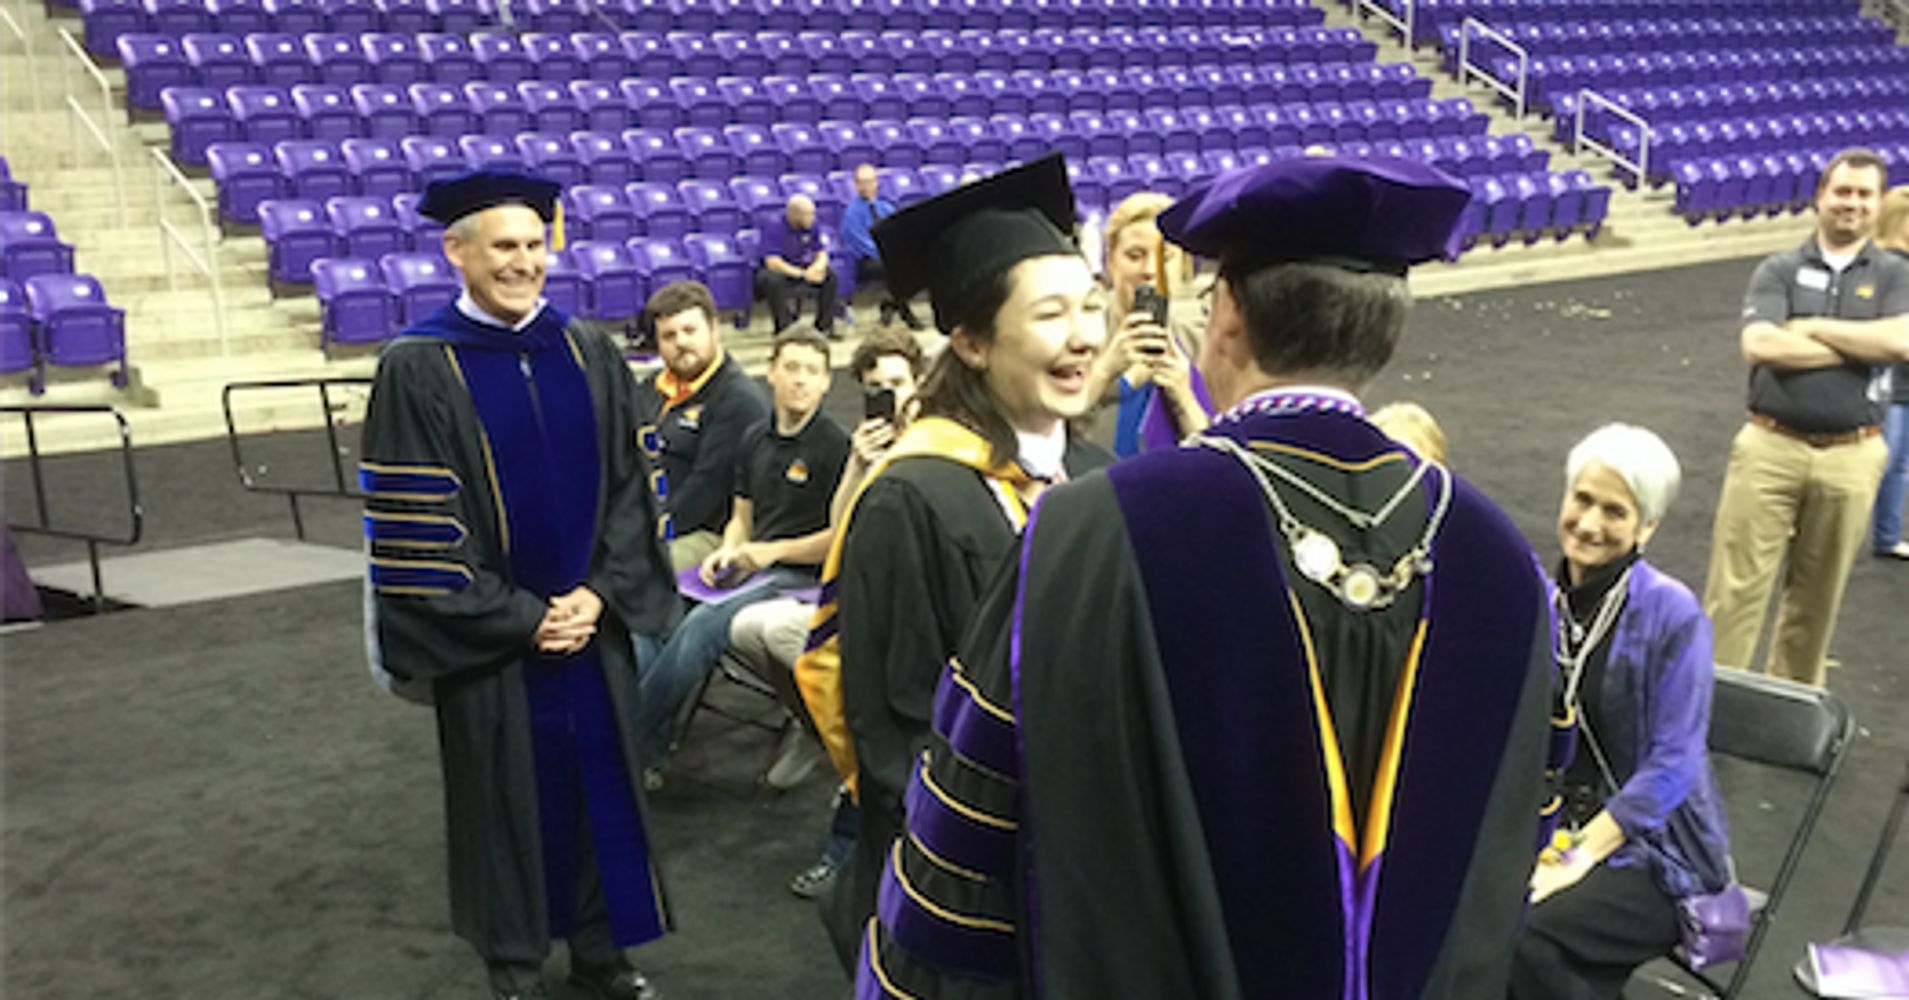 Student Missed College Graduation, So School Held One Just For Her ...